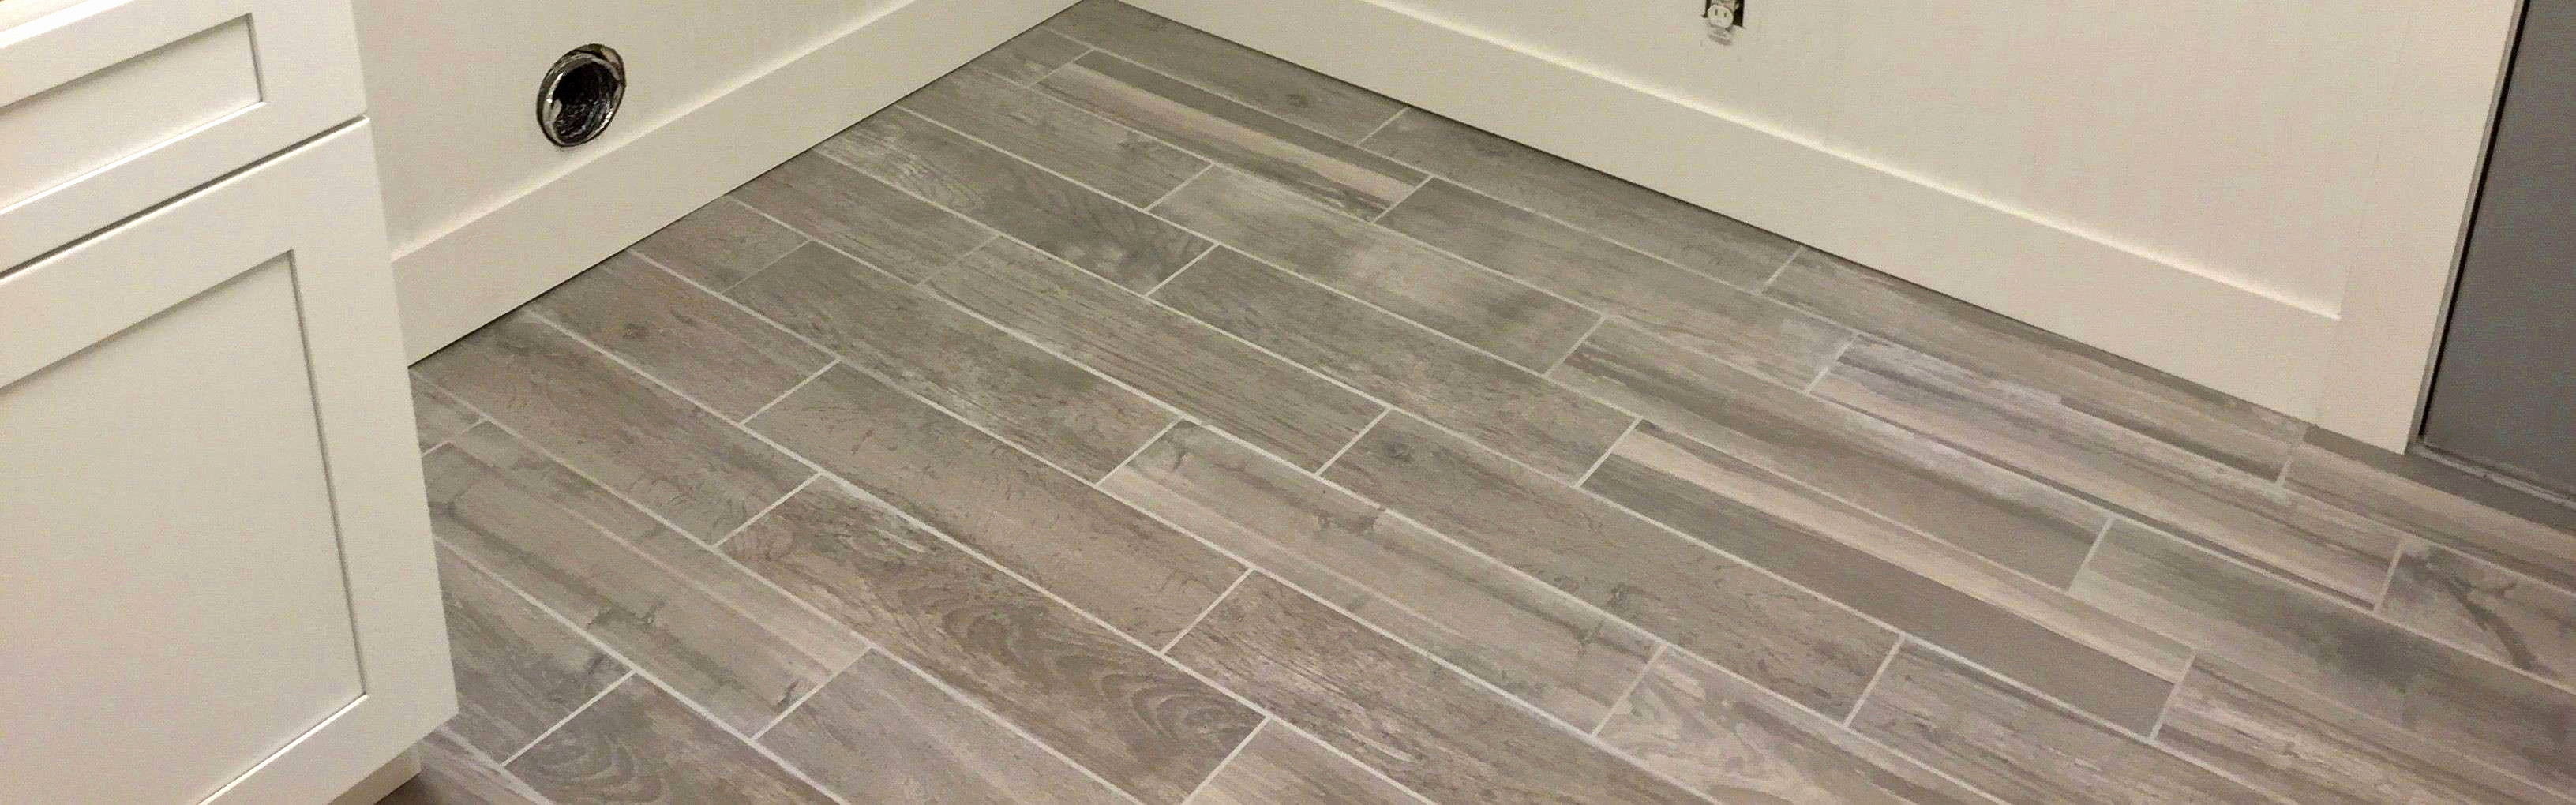 how much a square foot to refinish hardwood floors of ceramic tile contractors 11 beautiful kitchen floor tile patterns regarding unique bathroom tiling ideas best h sink install bathroom i 0d exciting beautiful fresh bathroom floor 50 beautiful cost to refinish hardwood